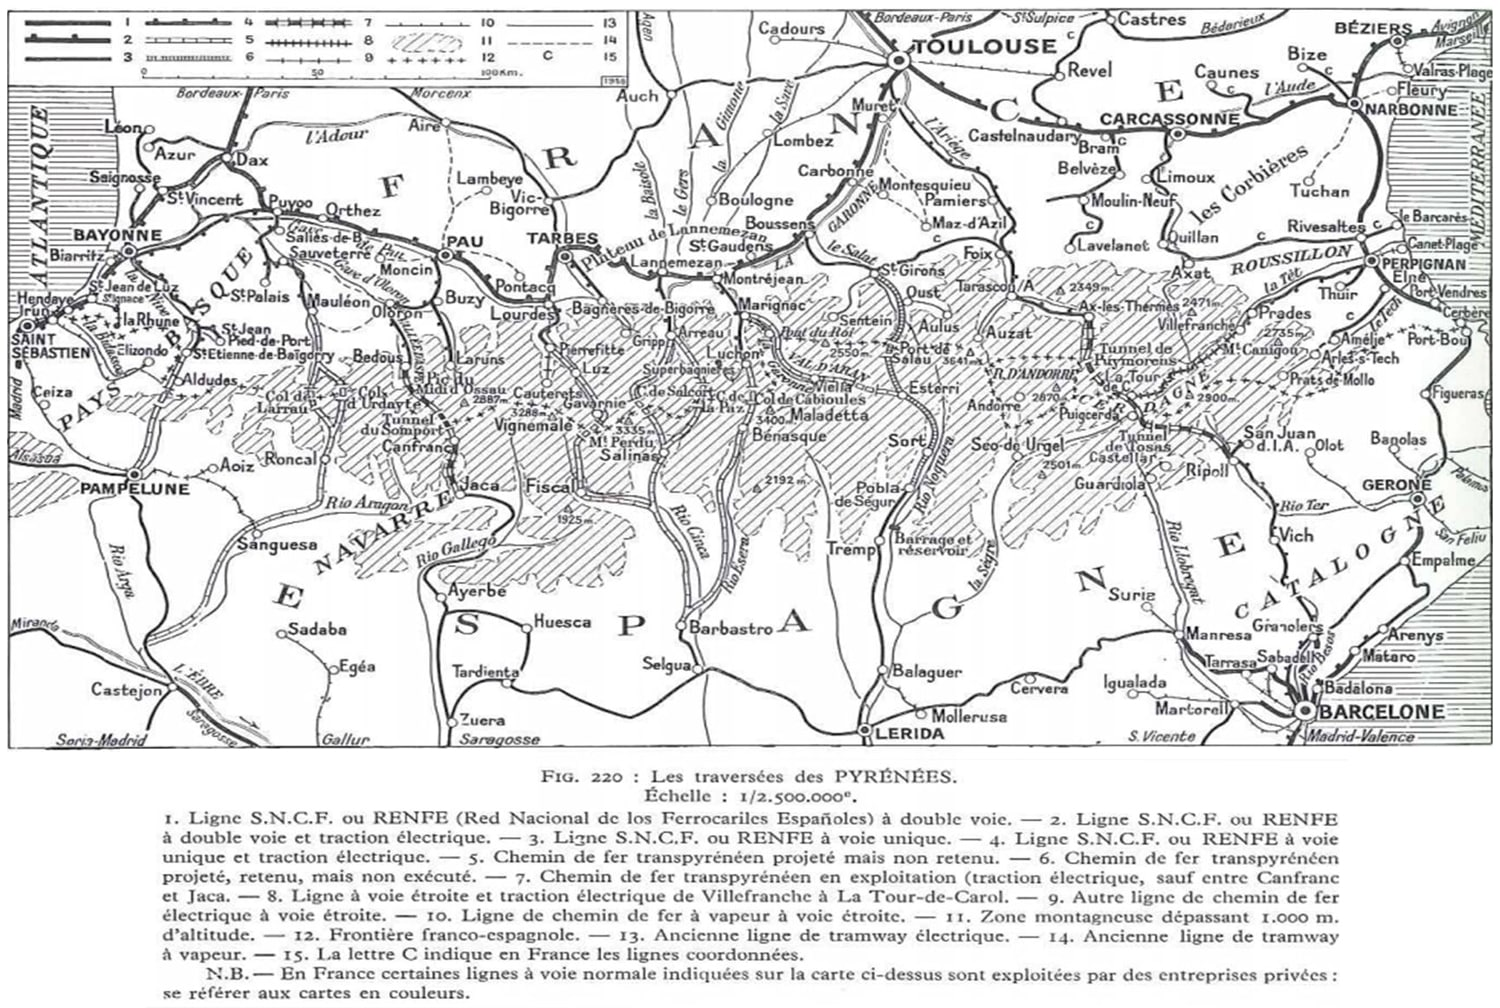 The crossing of the Pyrenees (Source : LARTILLEUX H. (1958), Géographie des chemins de fer français, tome 1 - volume 1, éd. Chaix)